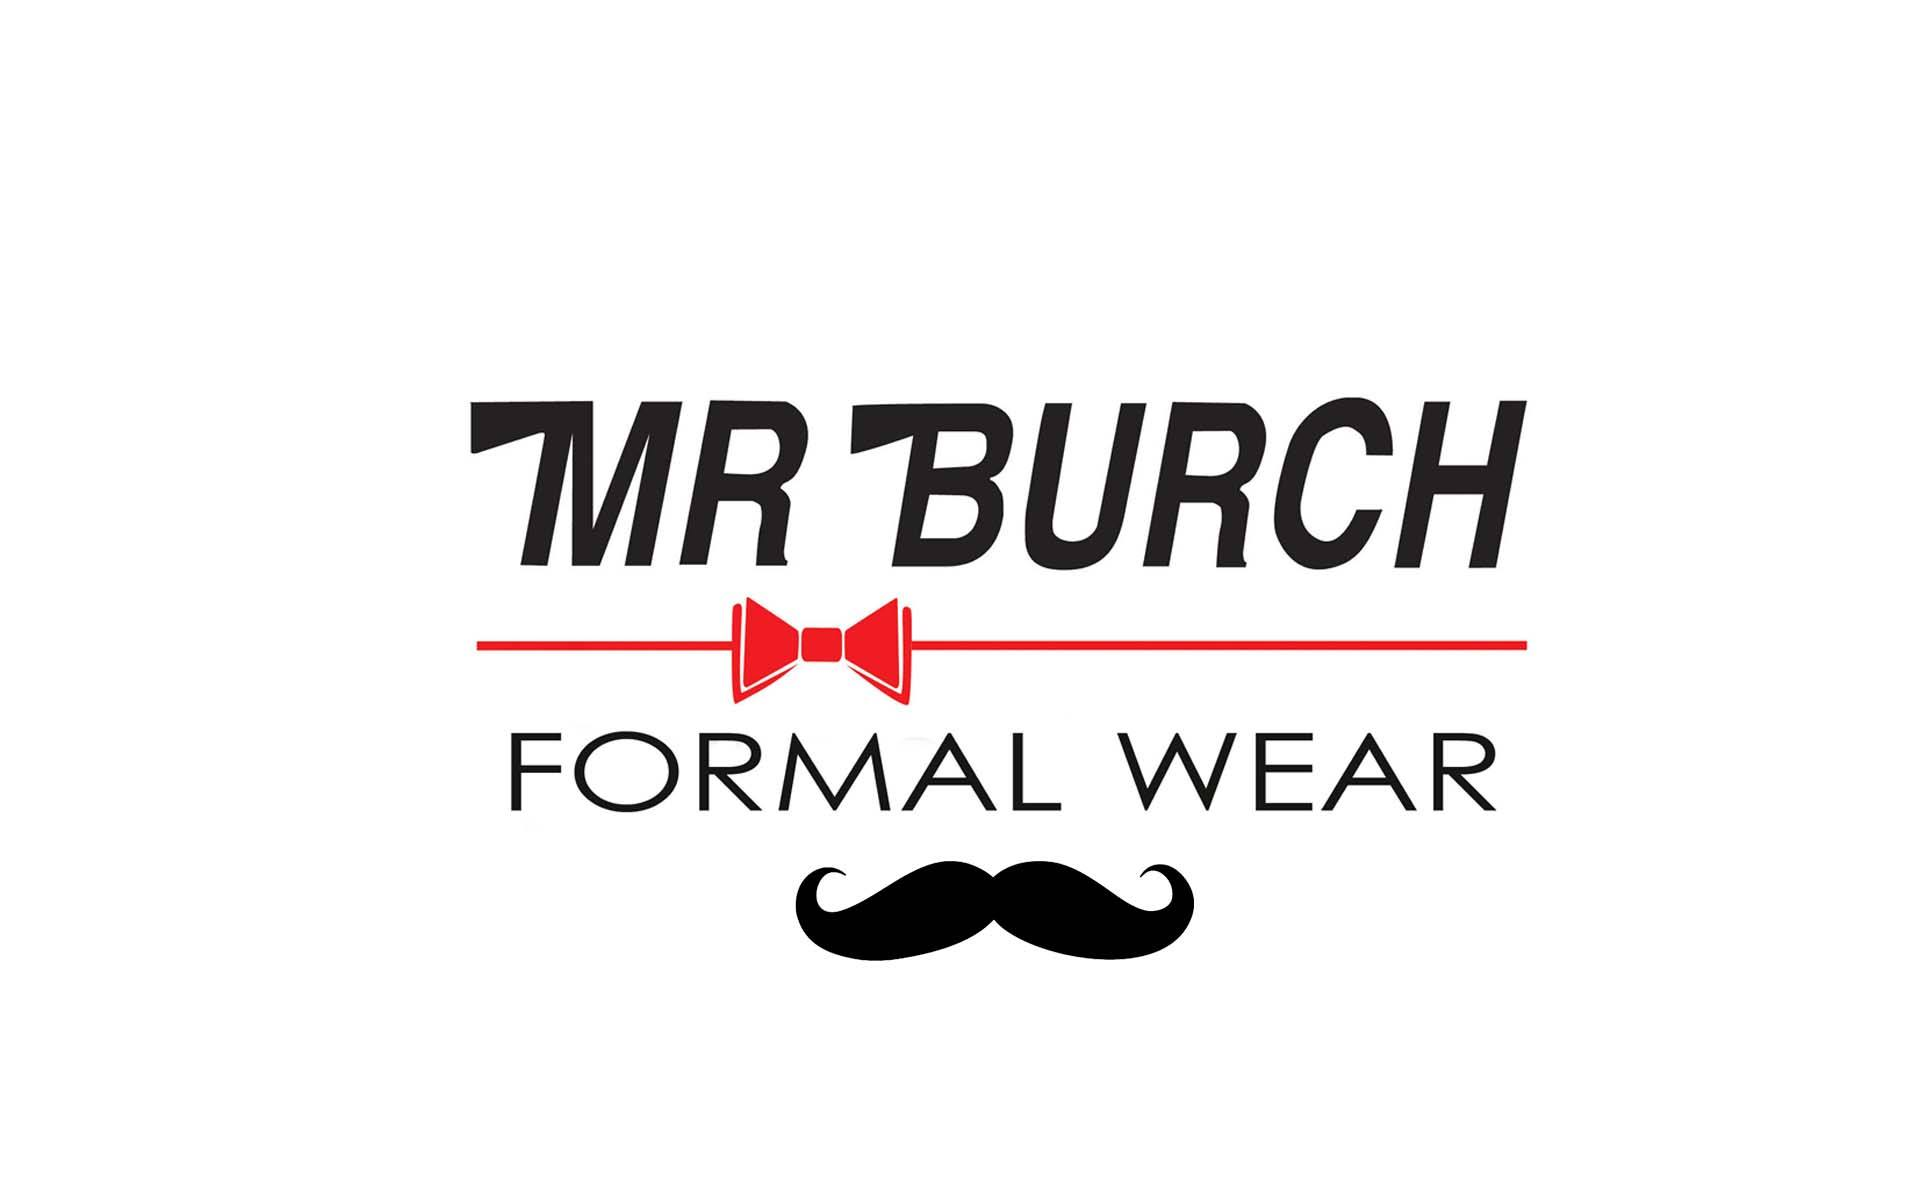 Mr Burch Formal Wear logo